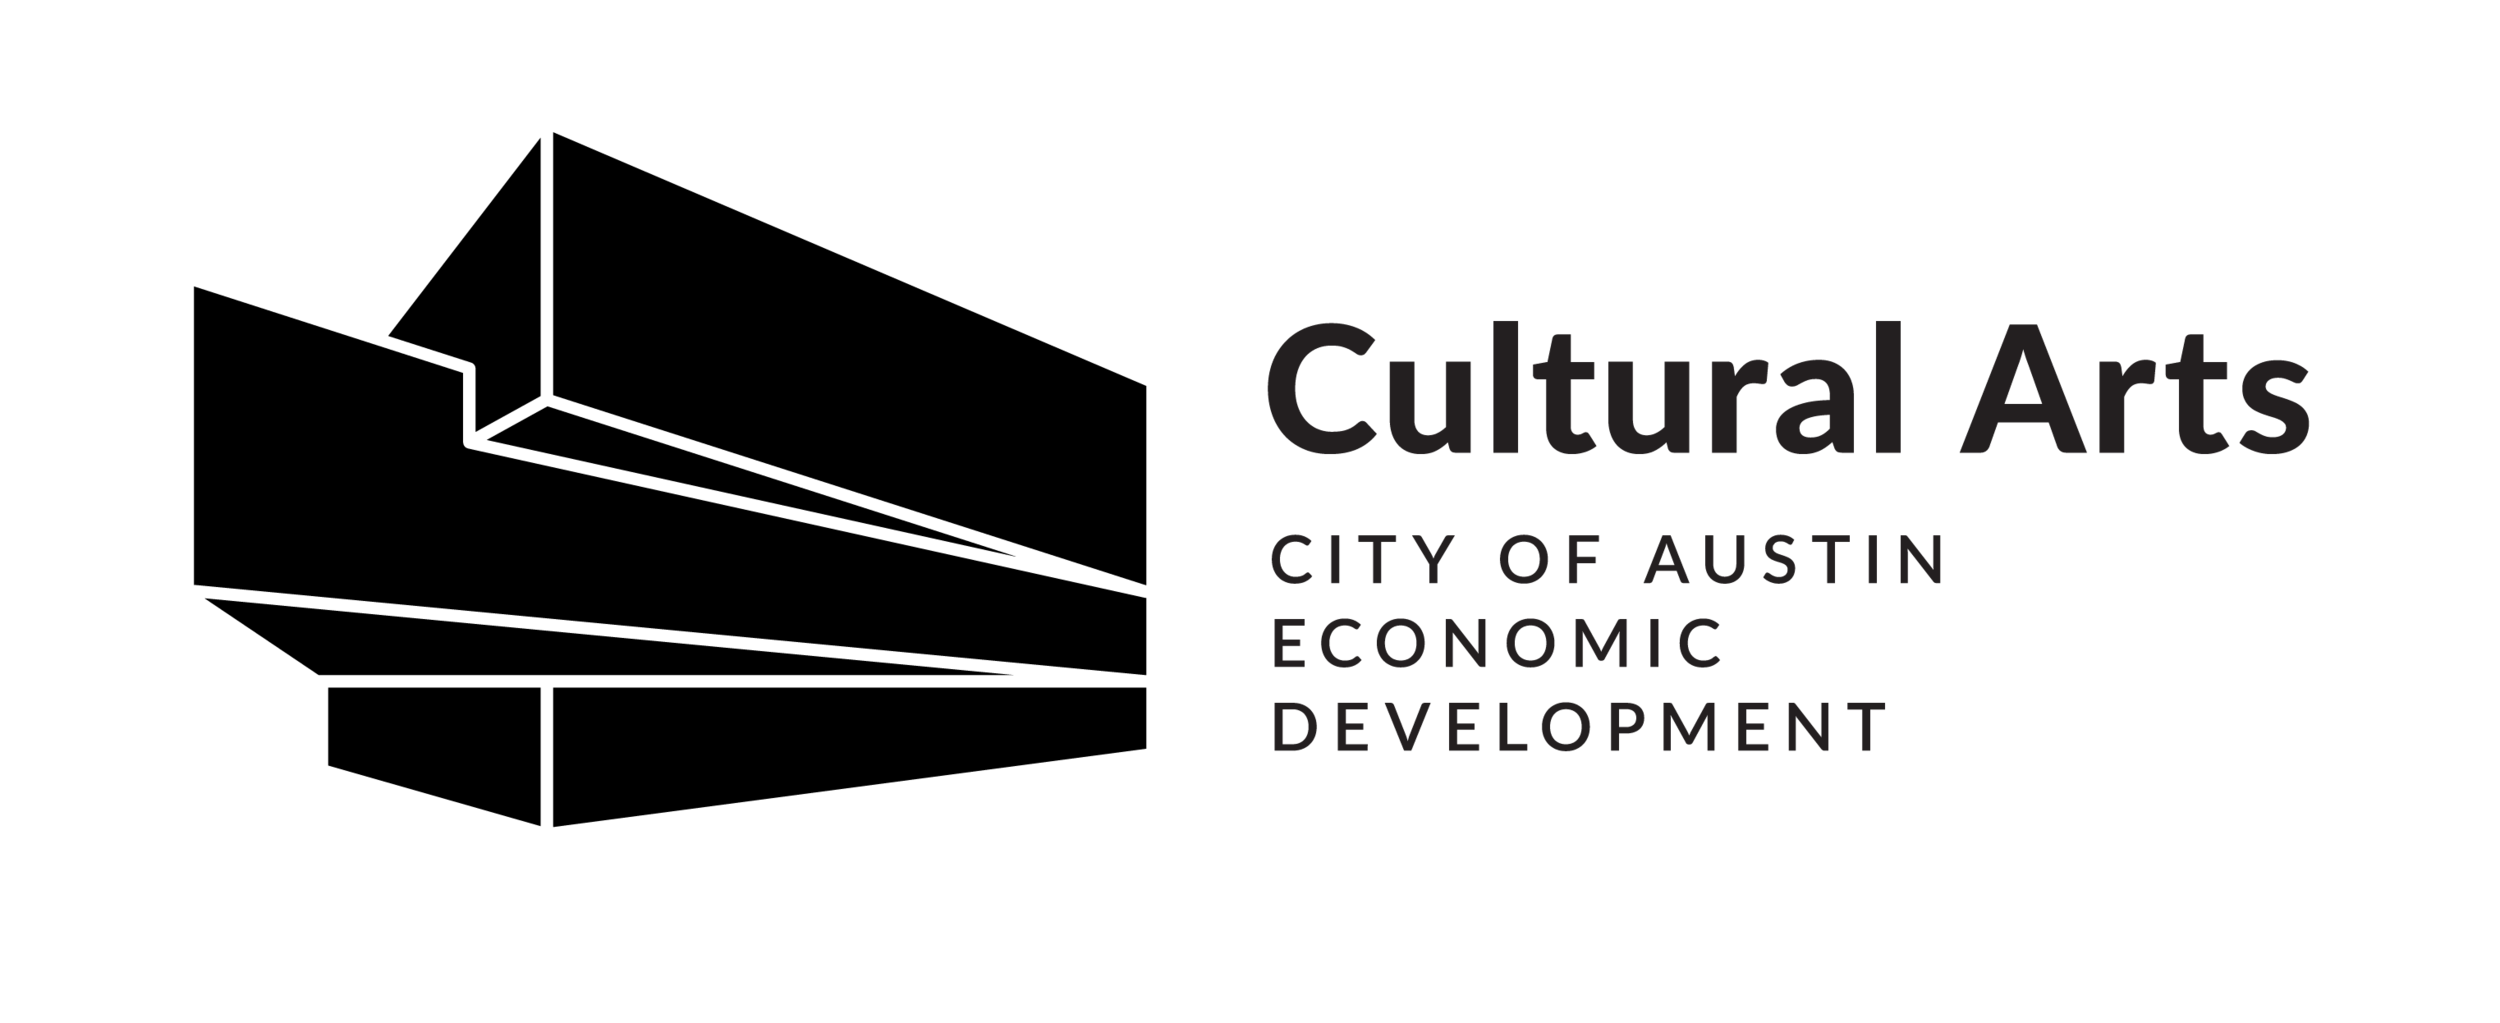 Thanks to Our Supporters - Golden Hornet is supported in part by the Cultural Arts Division of the City of Austin Economic Development Department, as well as private donations and grant sources.